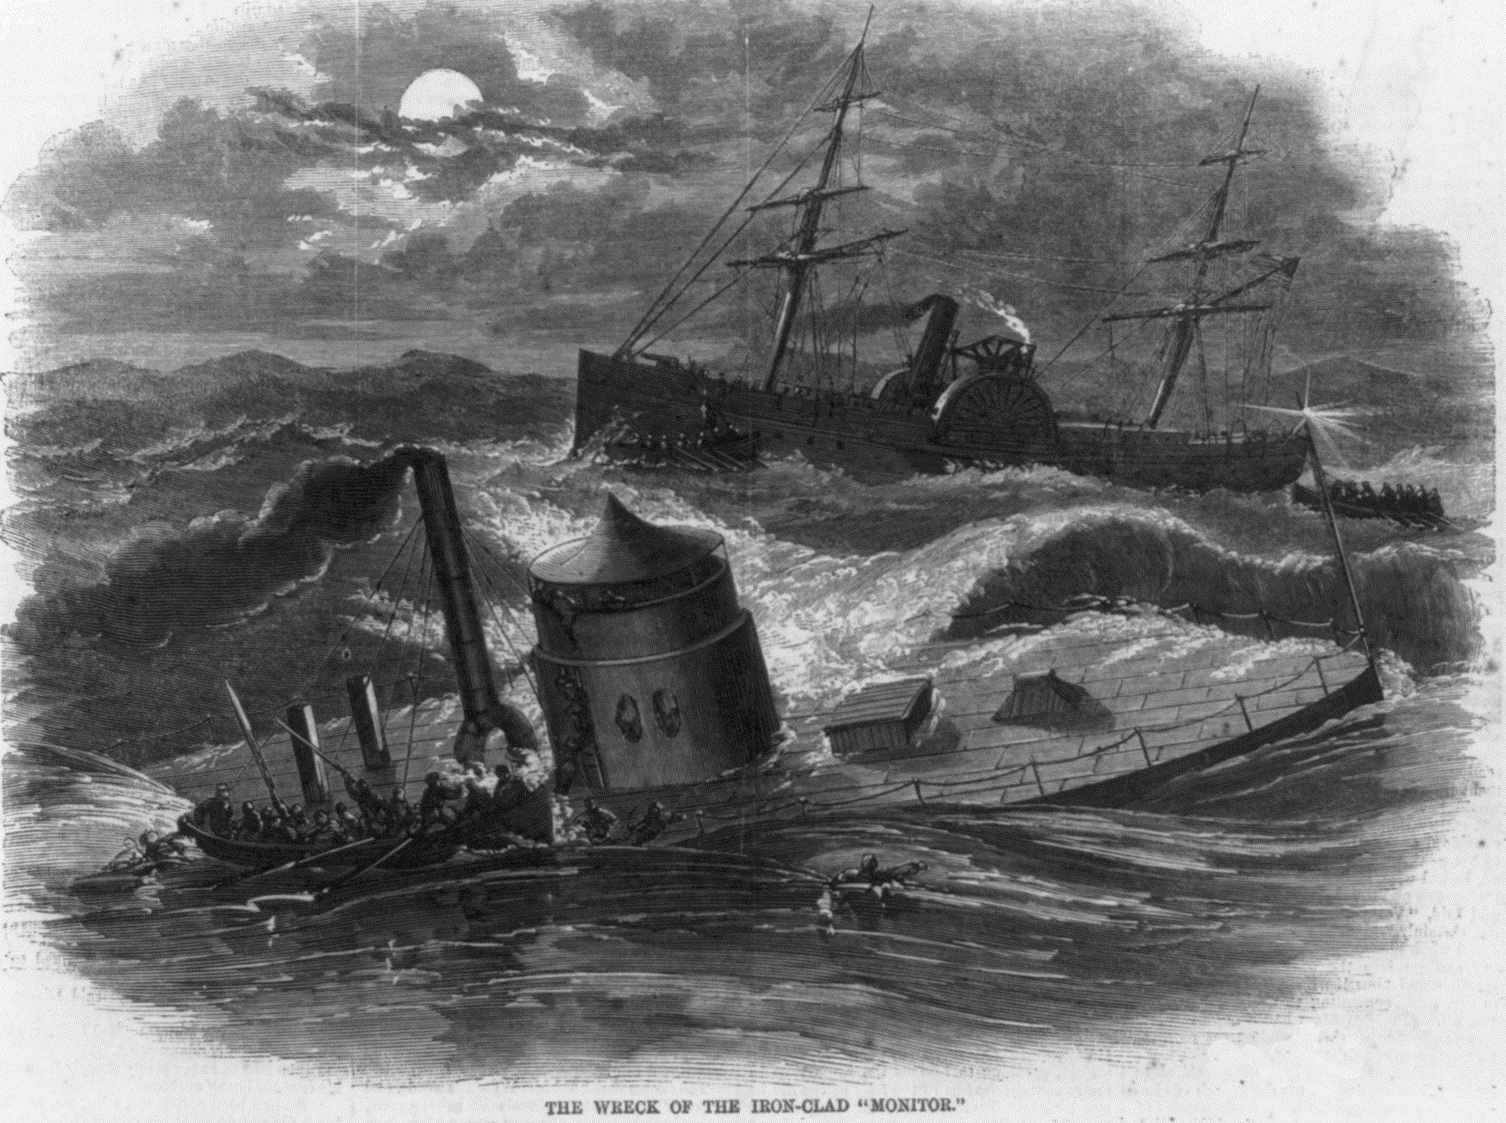 Depiction of the sinking of the Monitor off Cape Hatteras, North Carolina.